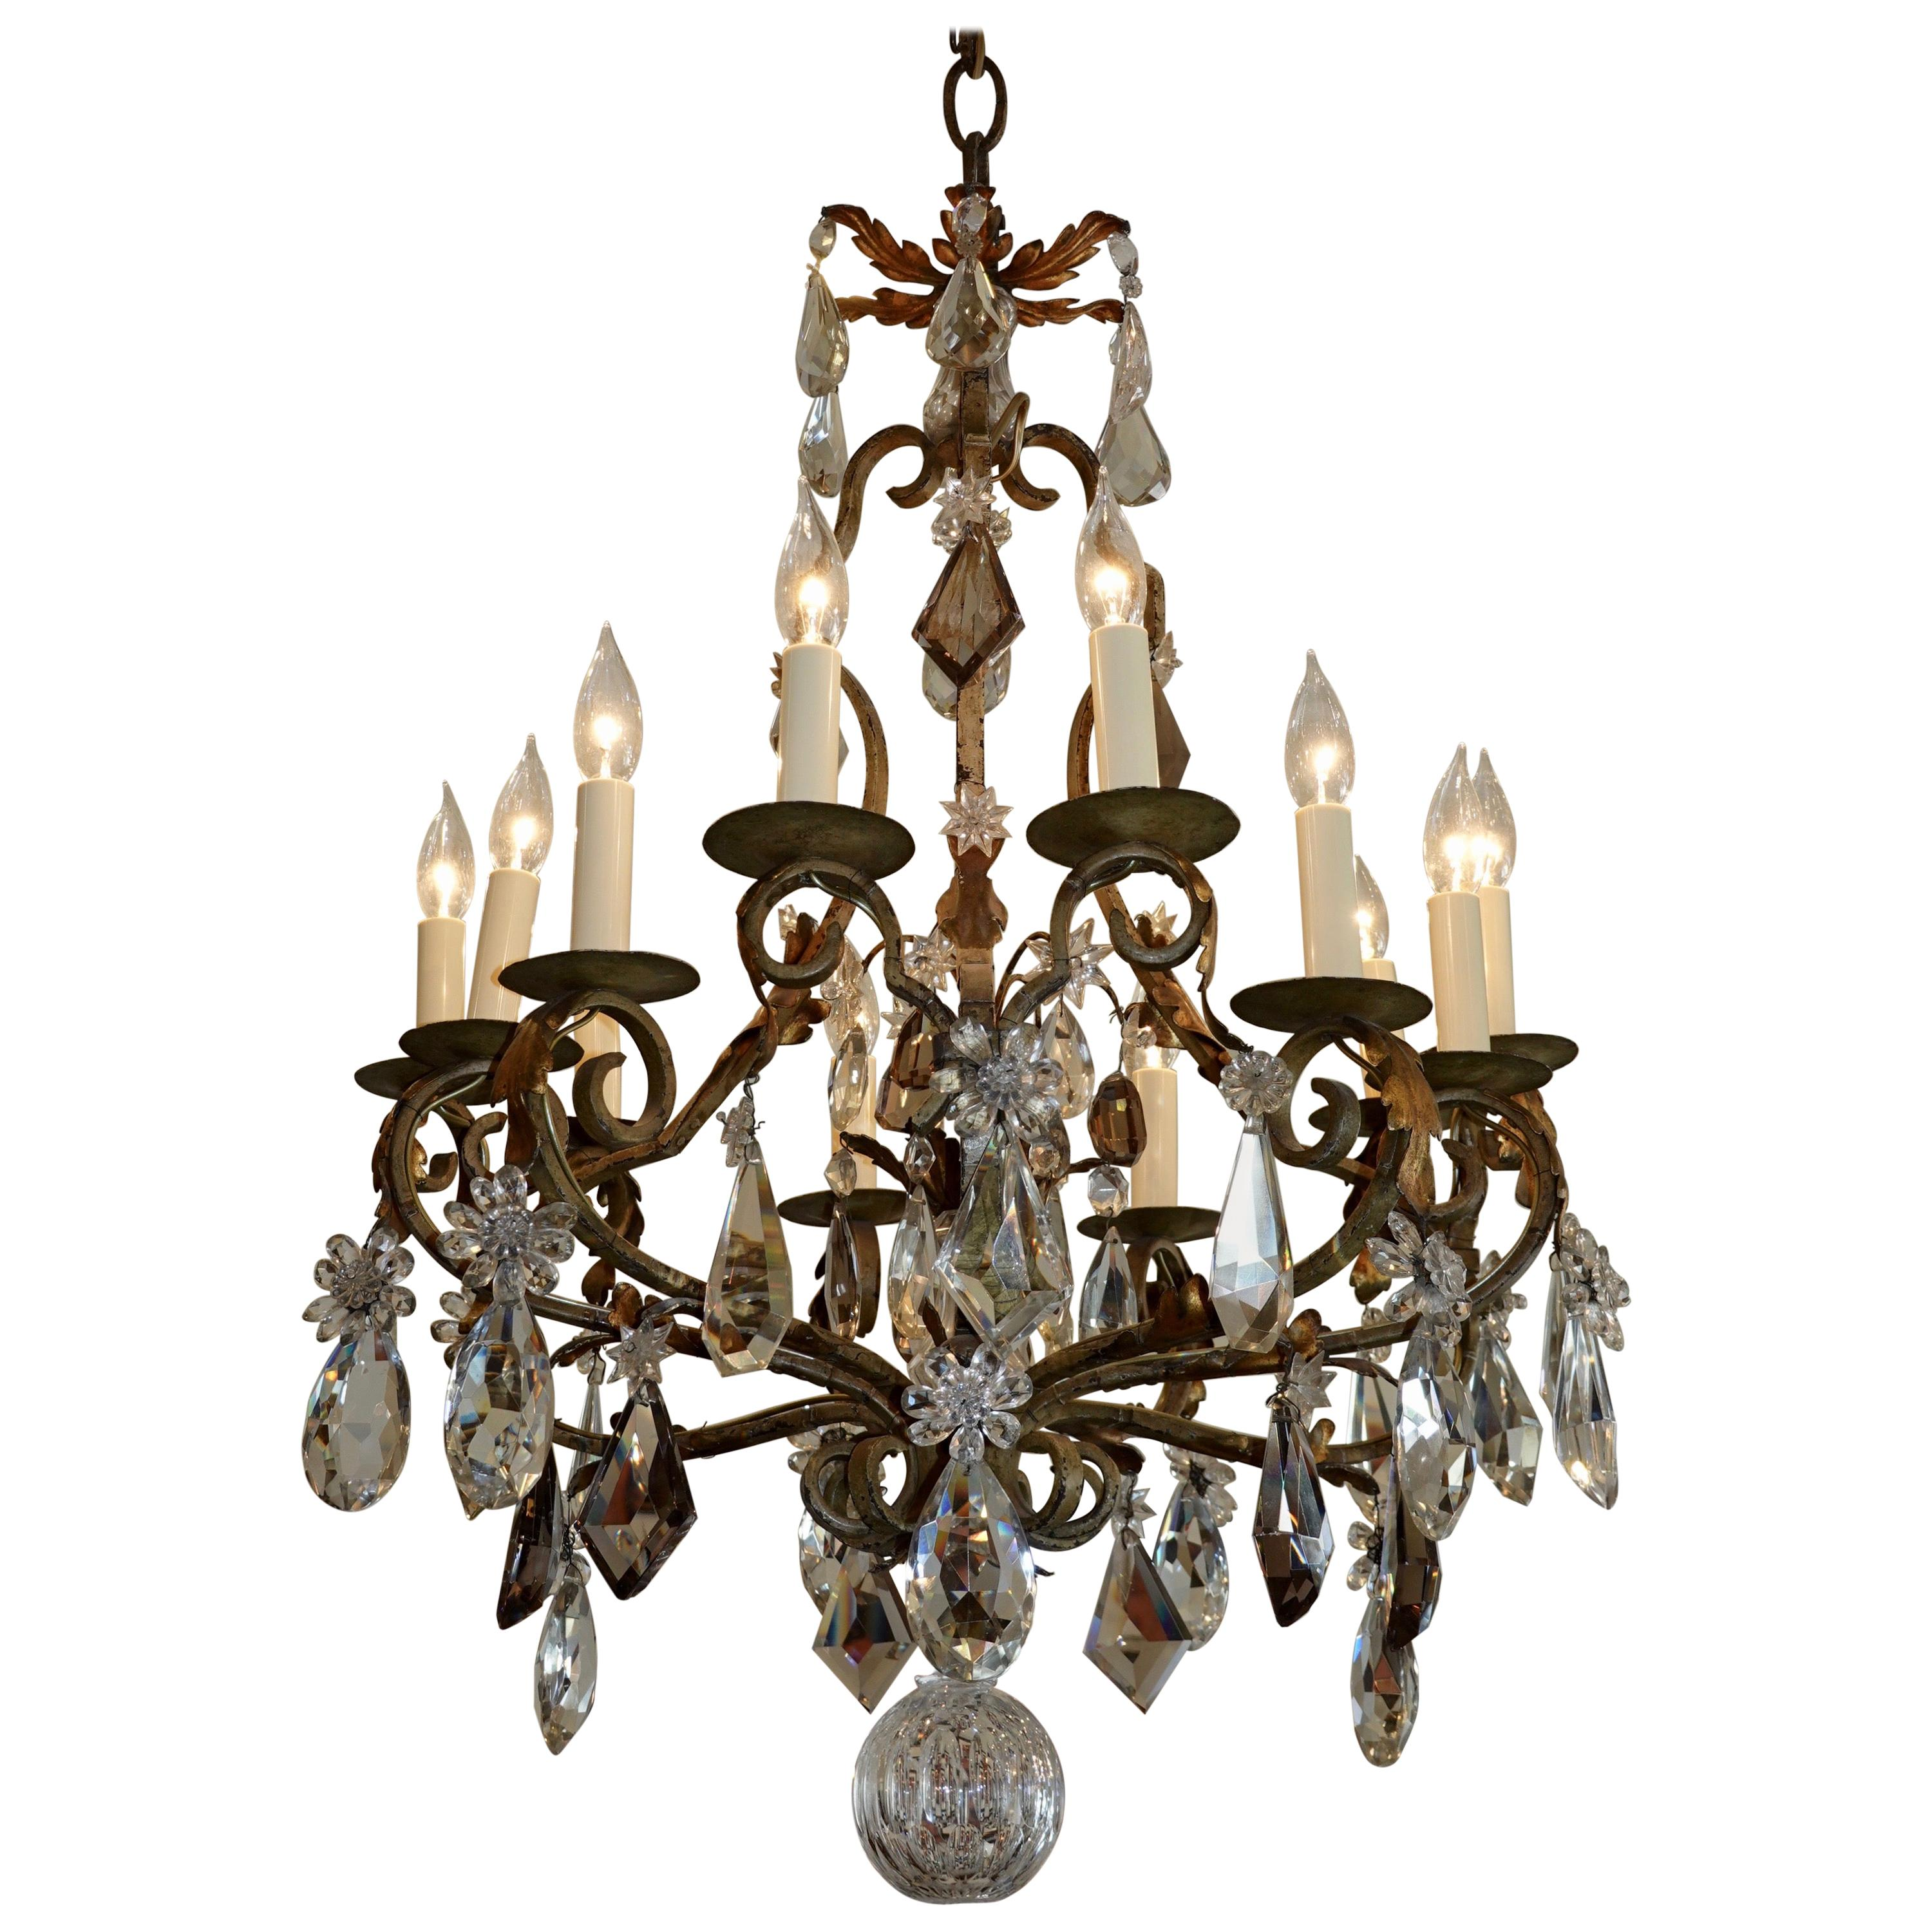 French Wrought Iron and Crystal Chandelier with 12-Light